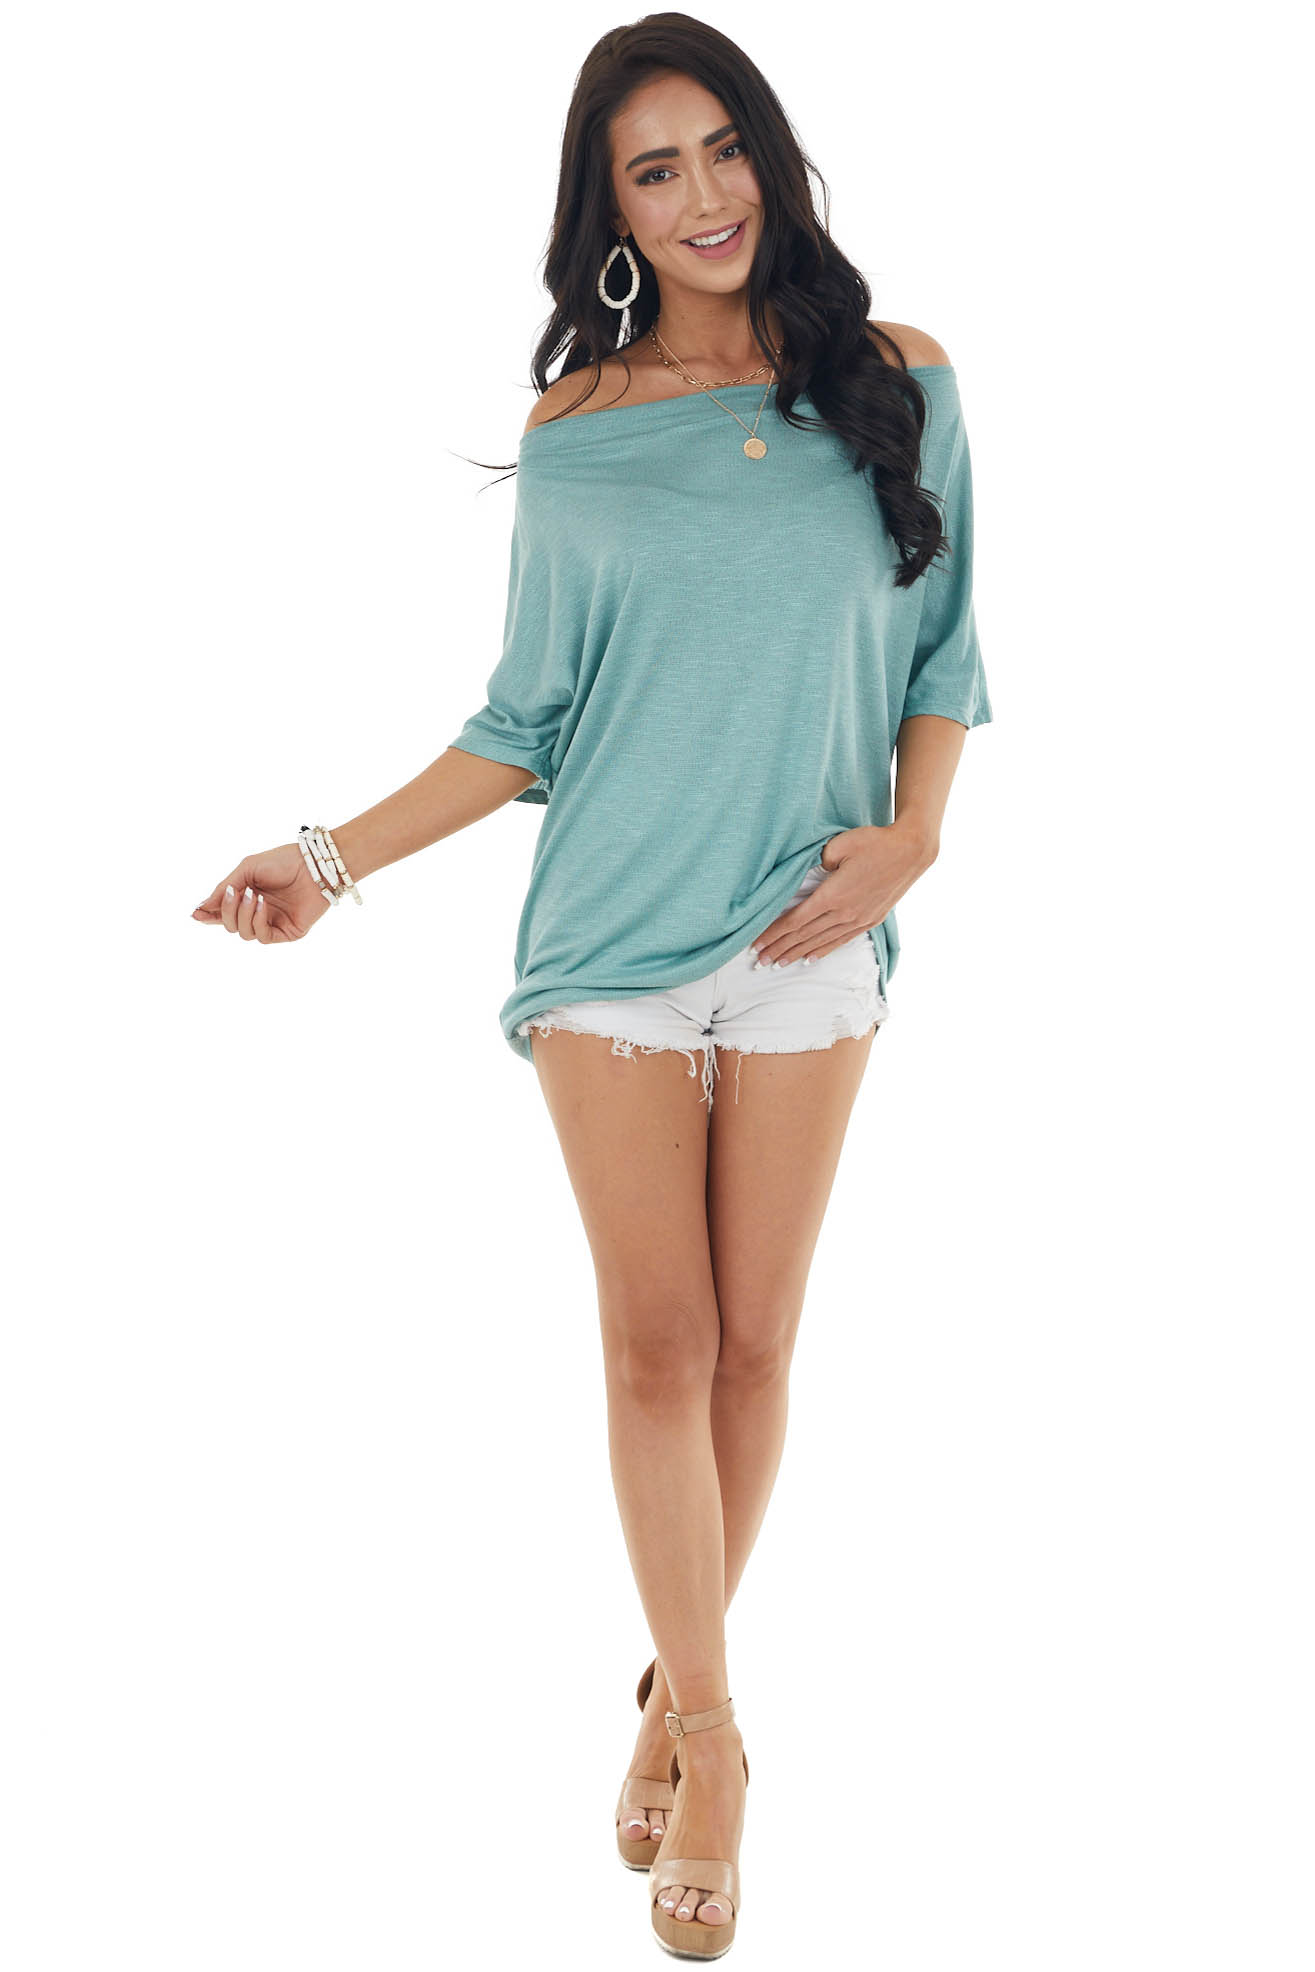 Light Heathered Teal Loose Fit Off the Shoulder Knit Tee